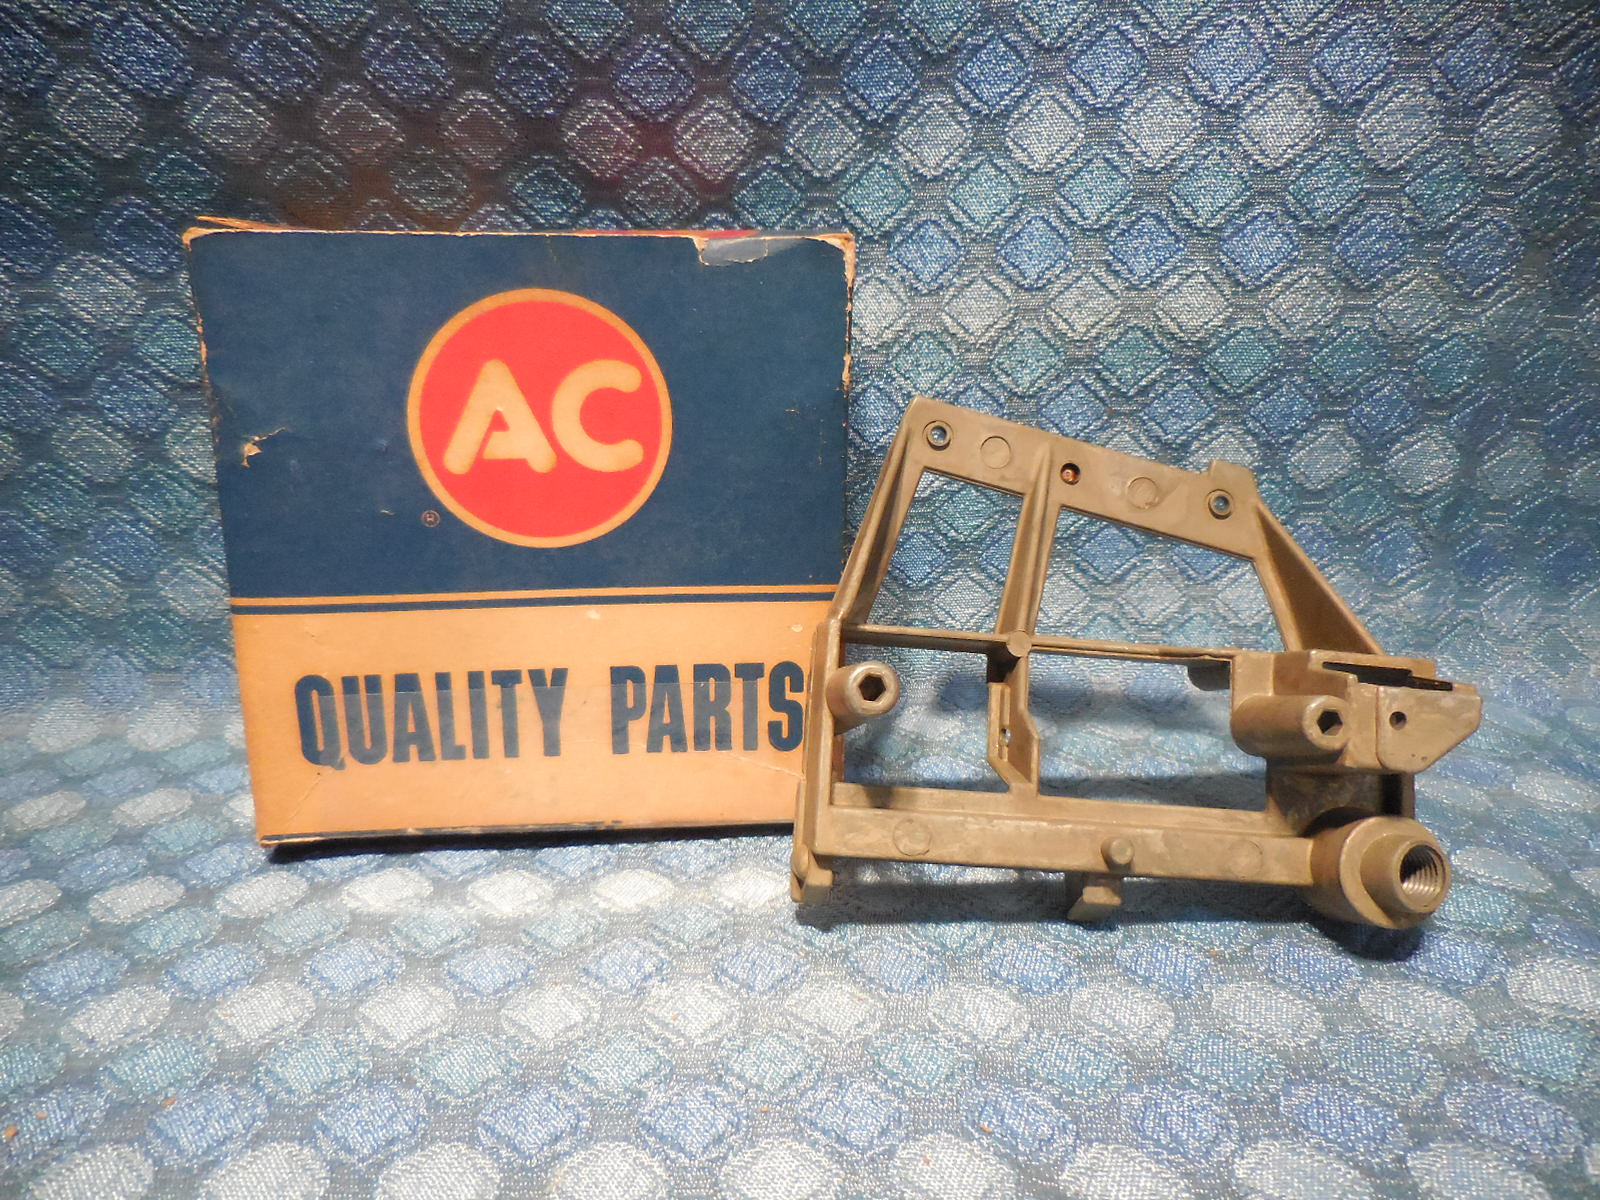 1961 1962 Cadillac NOS AC Speedometer Frame & Jewell Cup Assembly # 1589485  - NOS Texas Parts, LLC - Antique Auto Parts